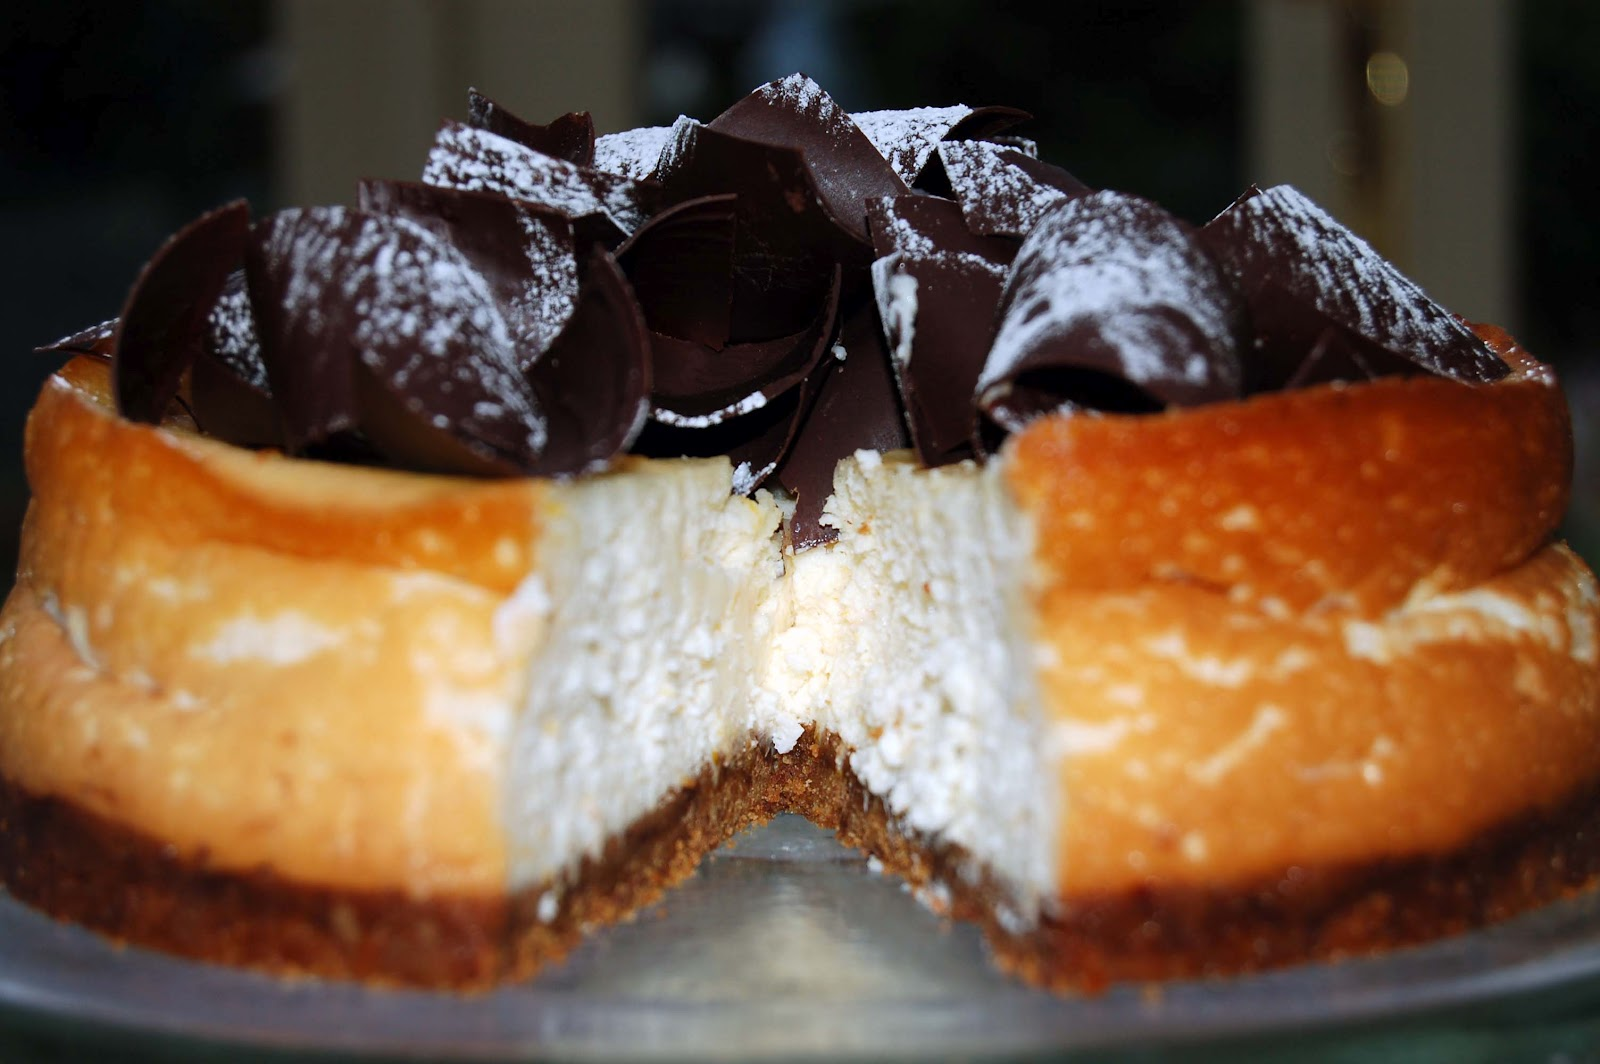 ... Terry's it's Lisa's...Chocolate Orange Cheesecake | Lisa'...